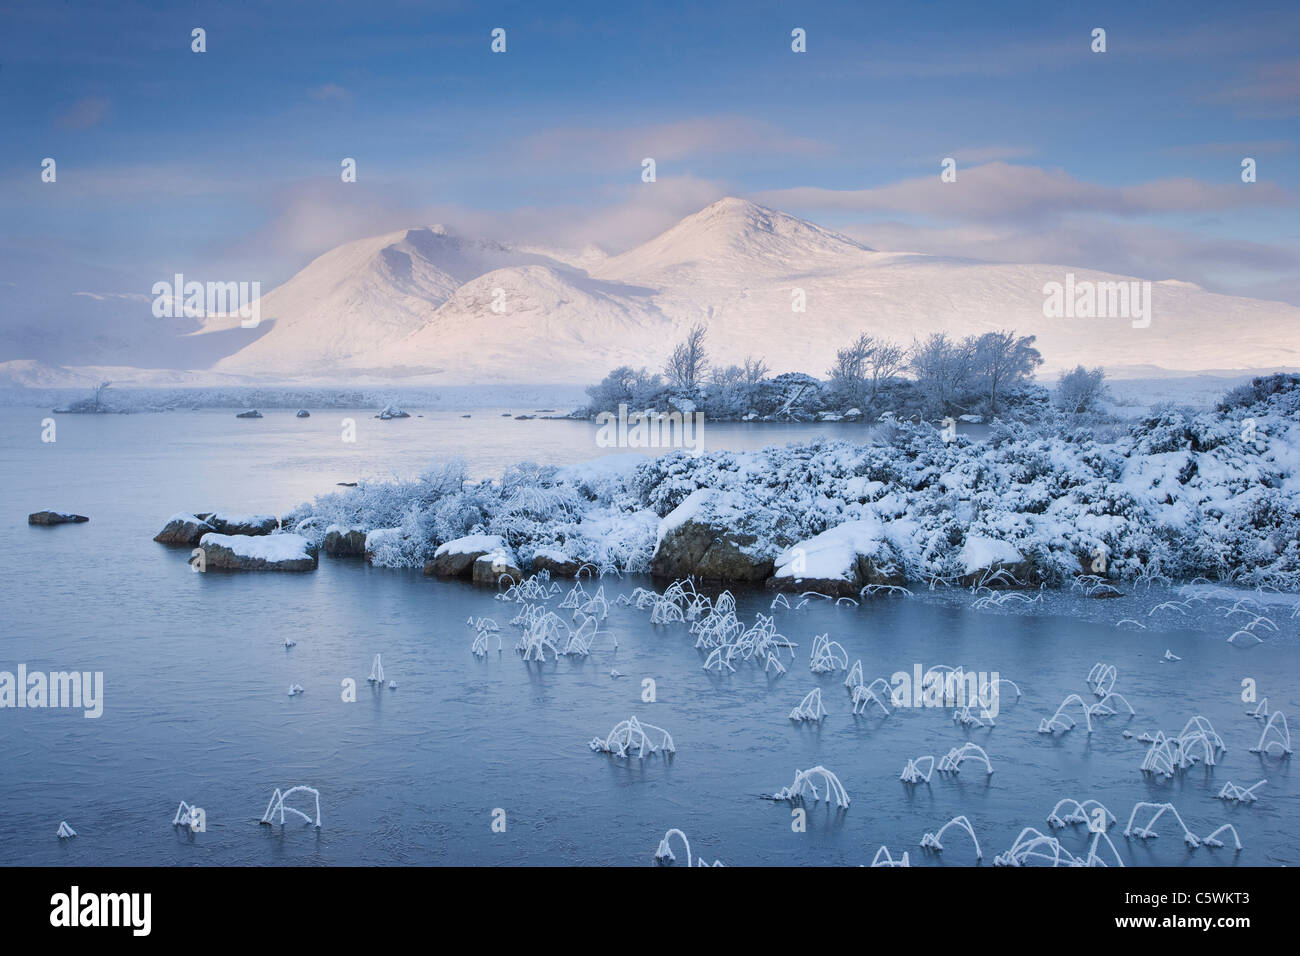 Lochan na h-Achlaise and Clach Leathad (1099 m) in winter. Rannoch Moor, Highland, Scotland, Great Britain. - Stock Image